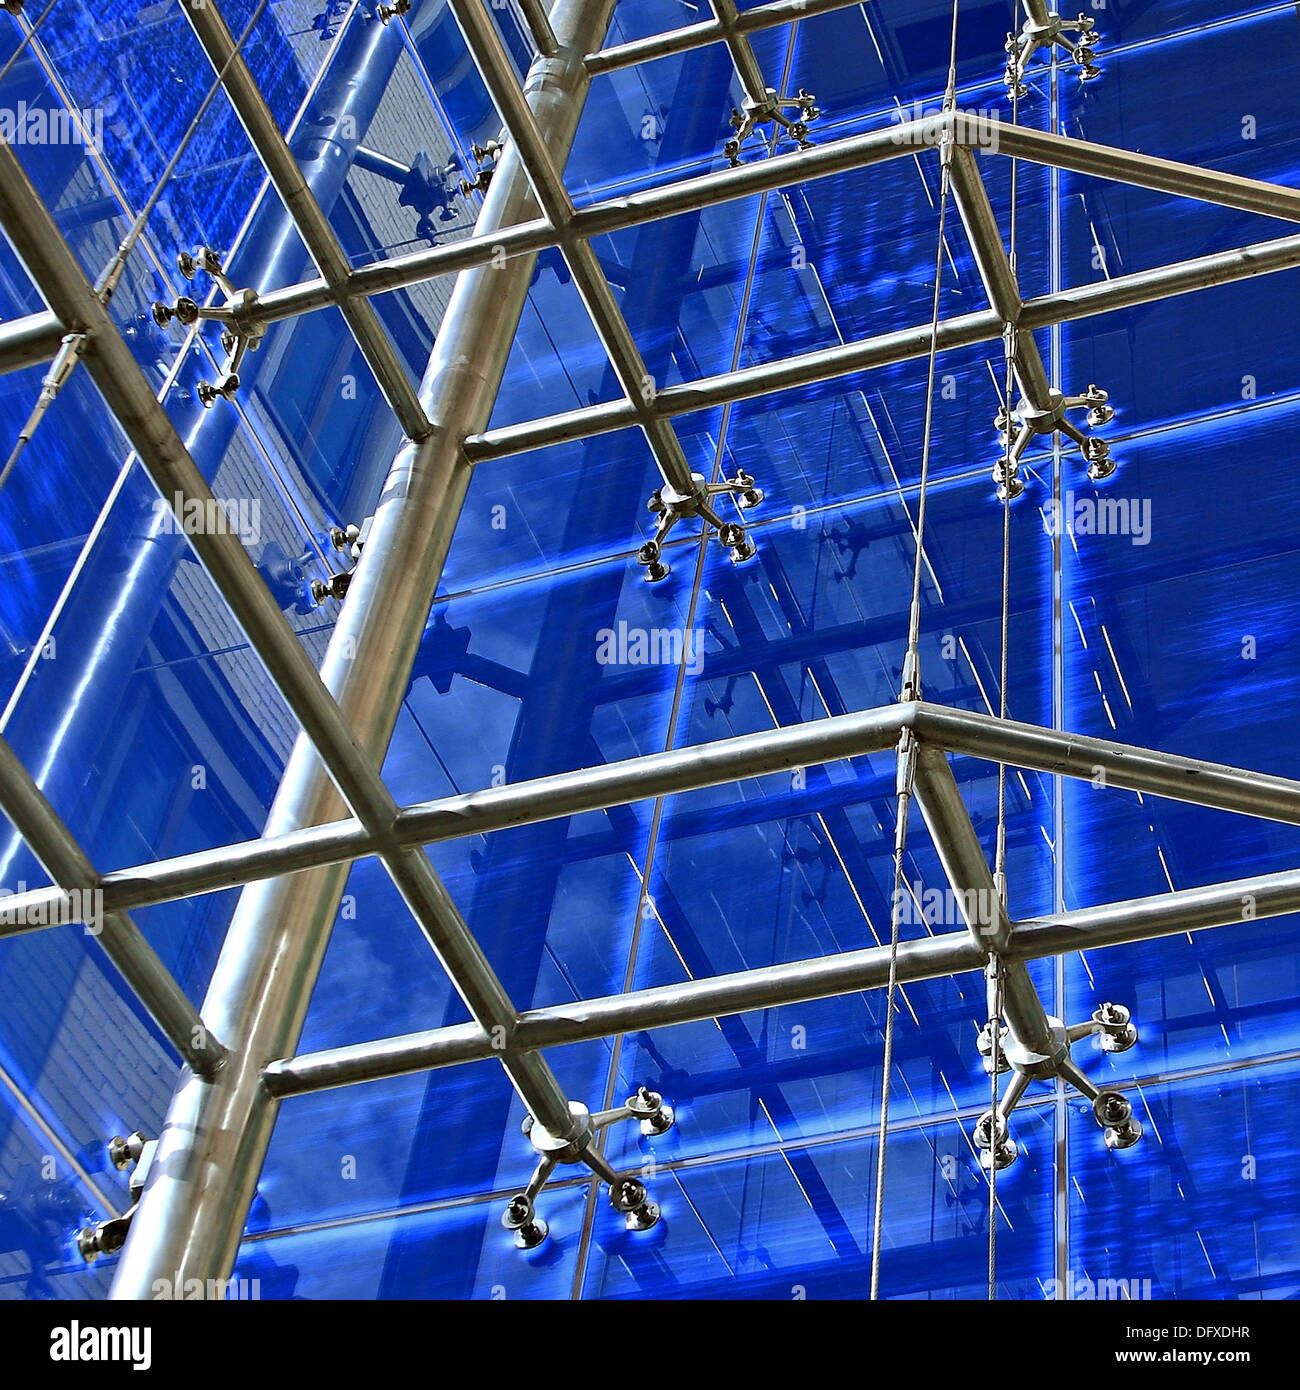 Atrium structural detail in office building, Grand Canal Plaza, Dublin 4, Ireland - Stock Image